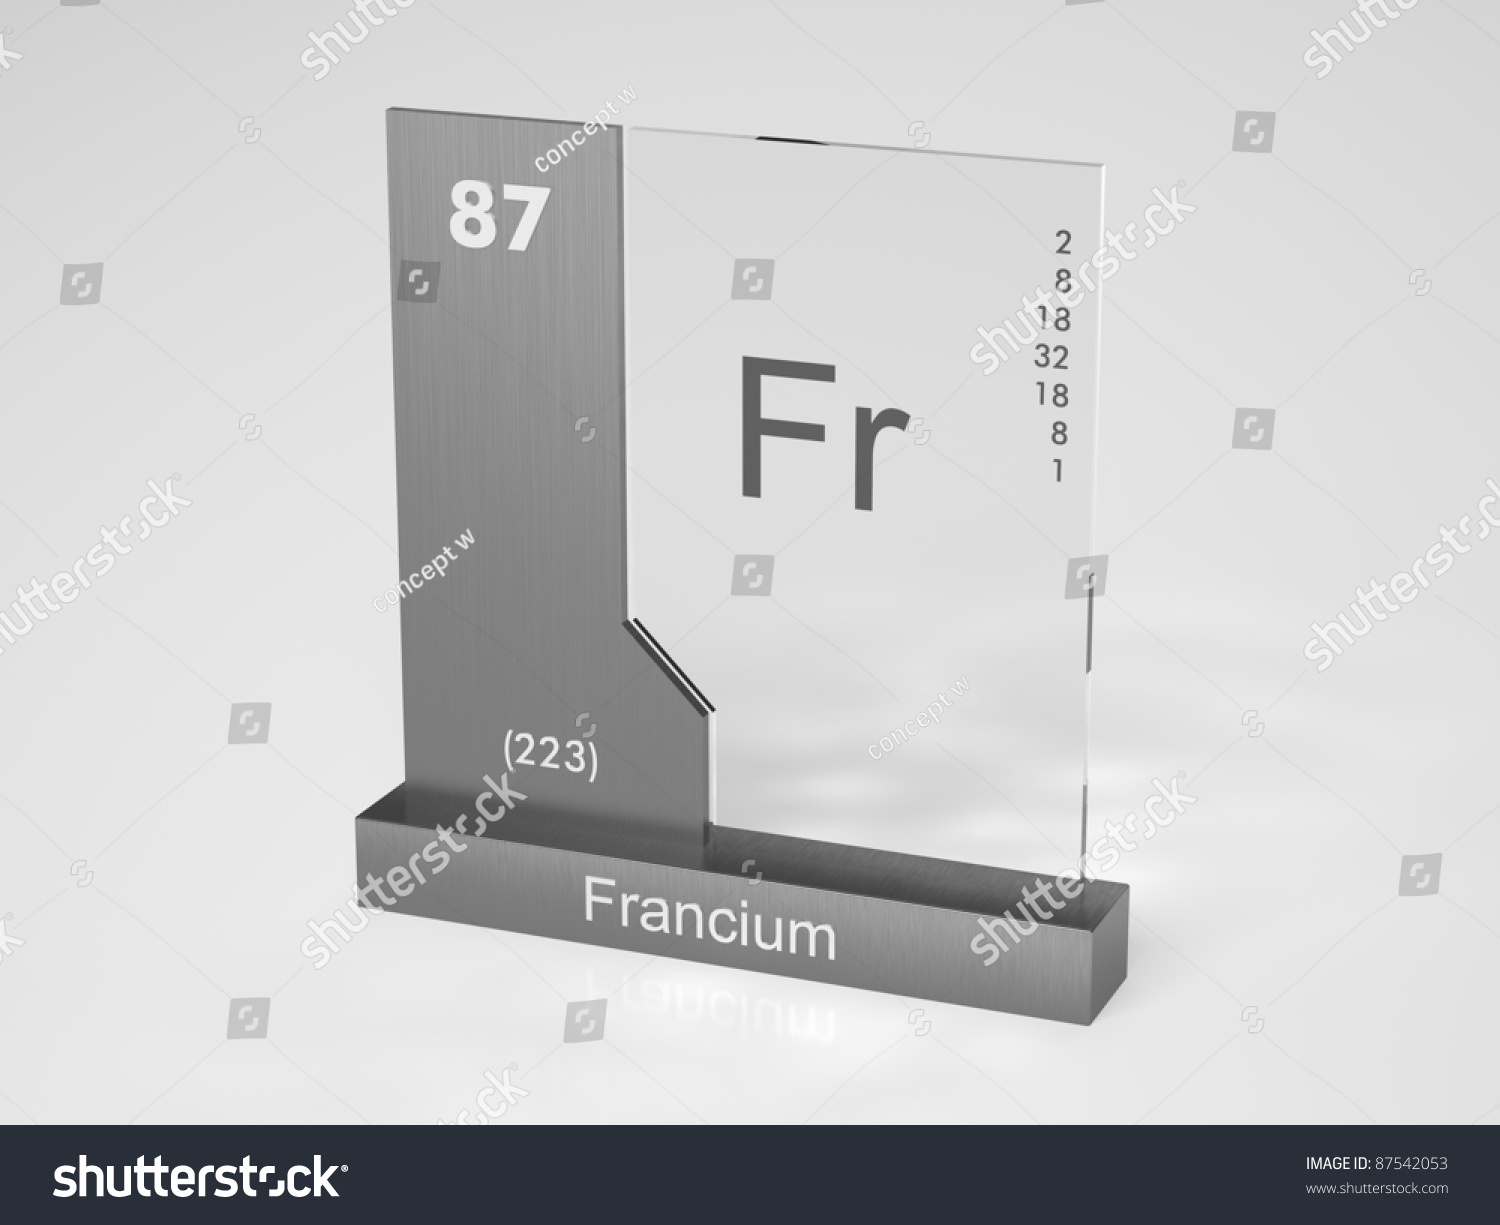 Francium Symbol Fr Chemical Element Periodic Stock Illustration